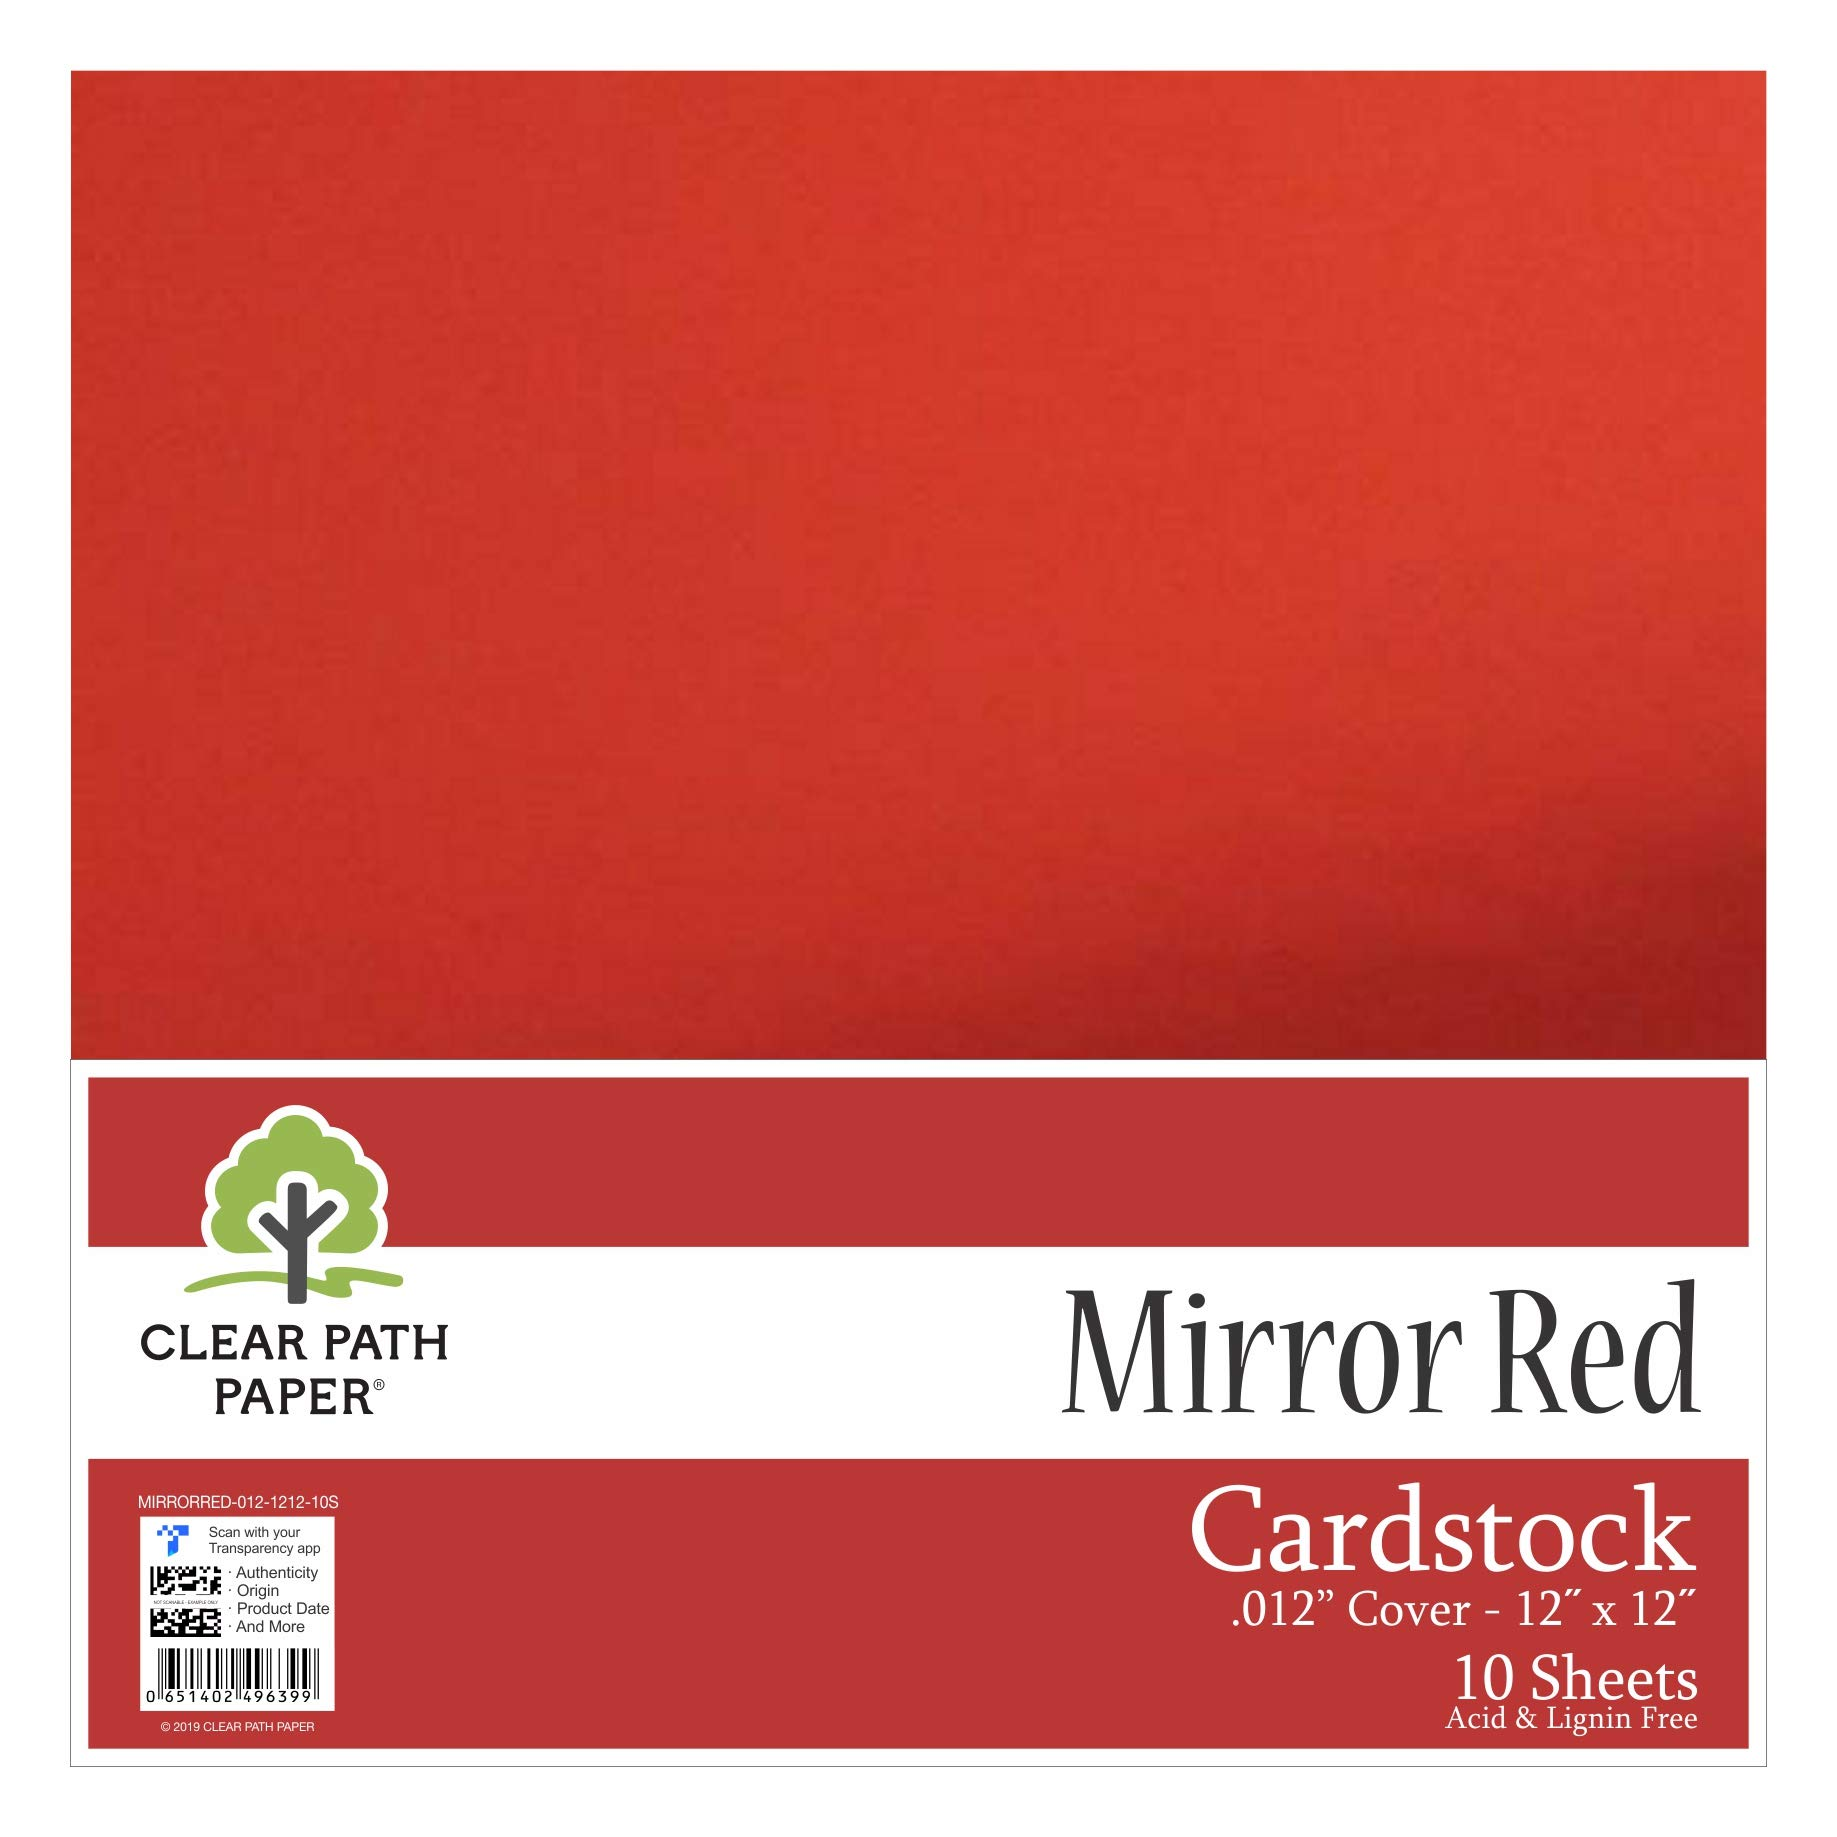 "Mirror Metallic Red Cardstock - 12 x 12 inch - .012"" Thick - 10 Sheets"